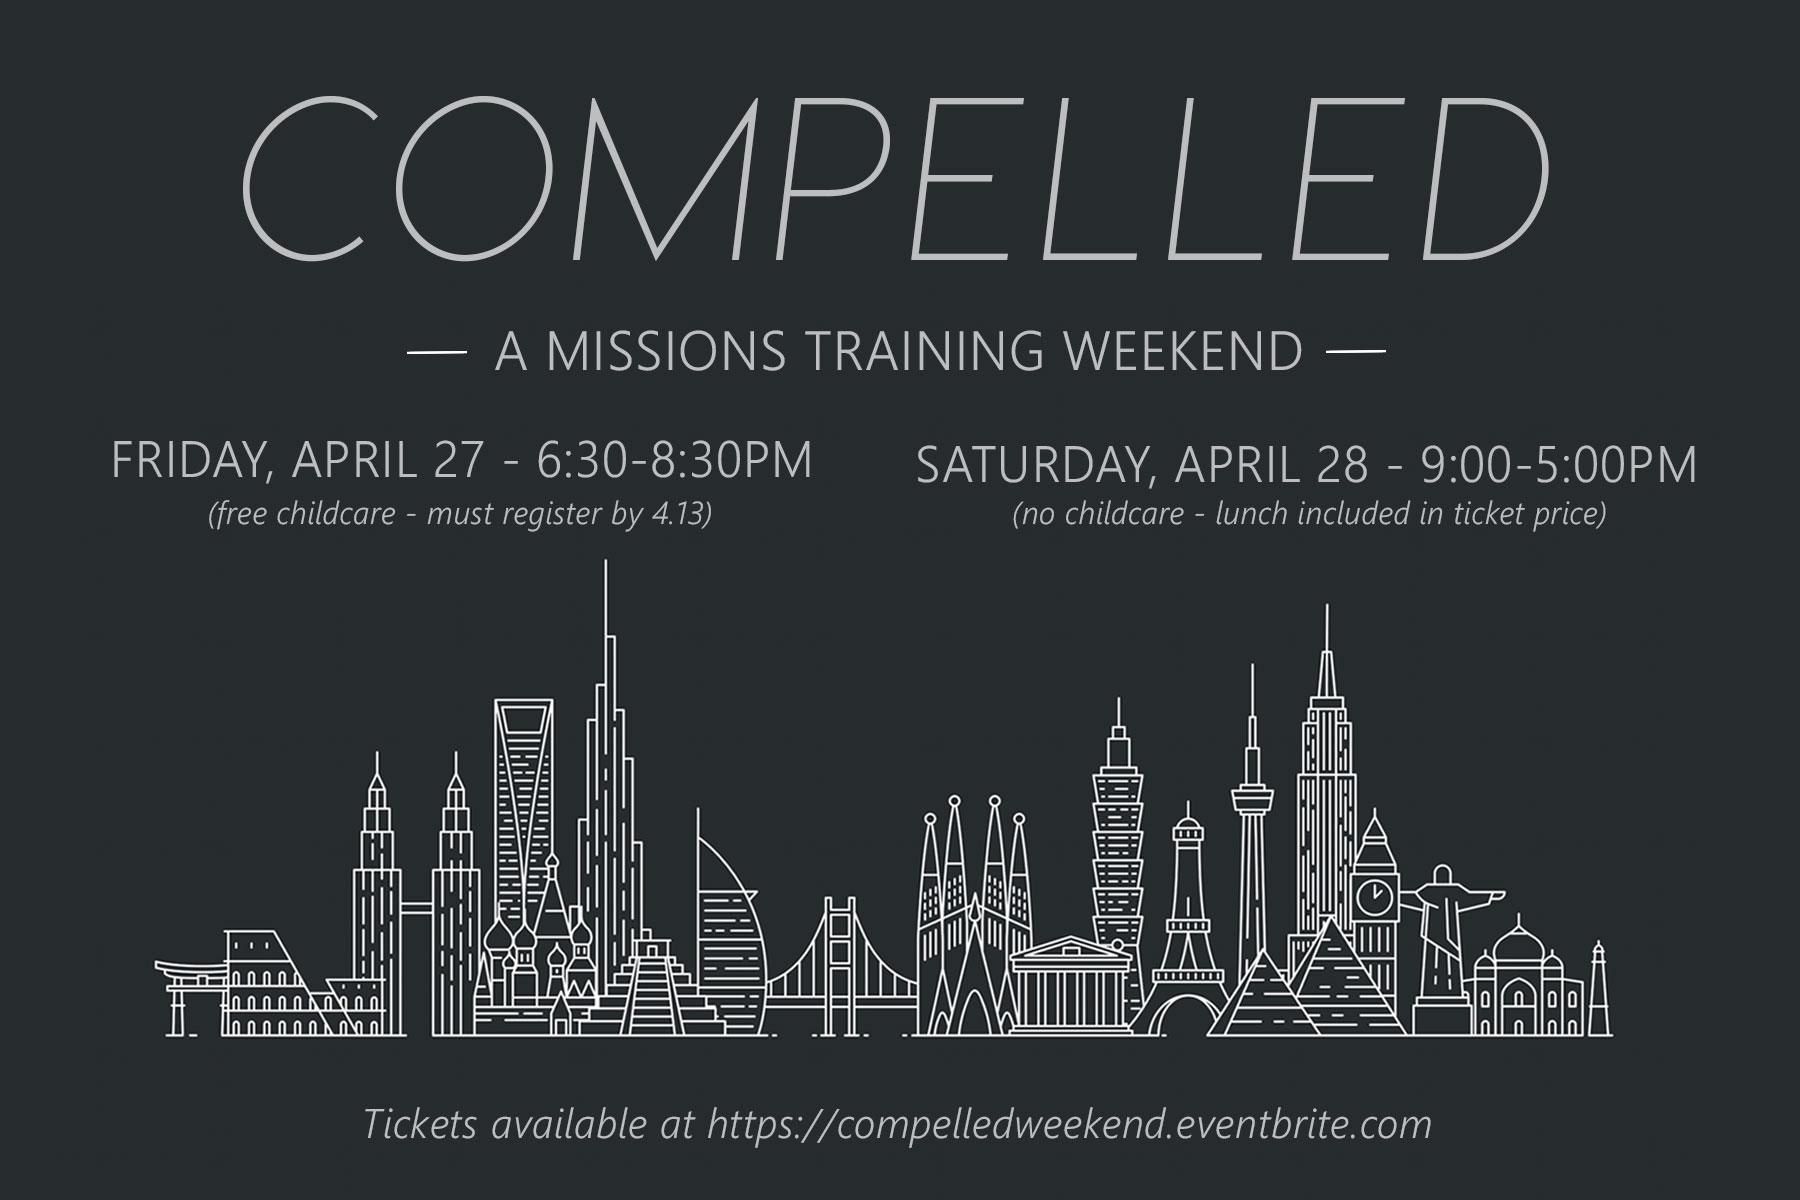 Compelled.4x6.front.jpg